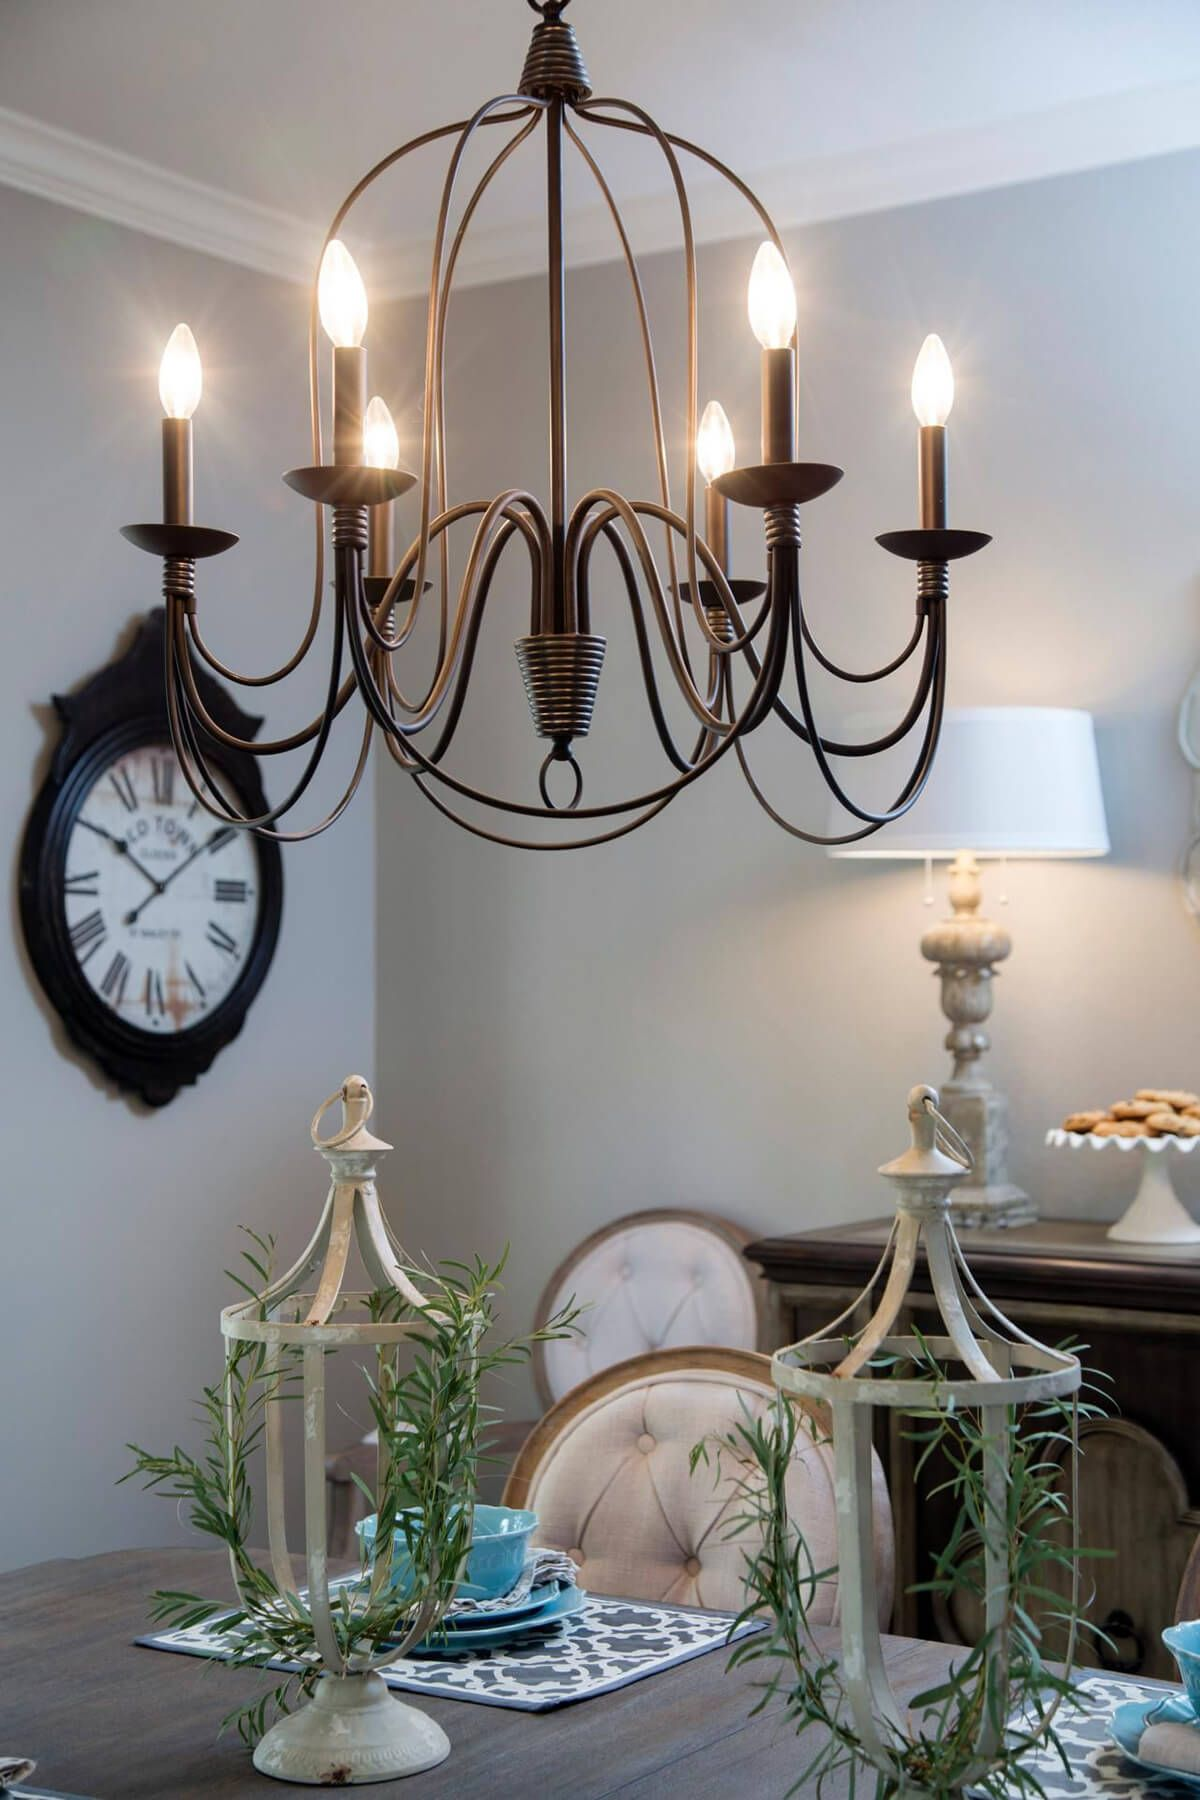 36 Farmhouse Lighting Ideas to Brighten Up Your Space in a